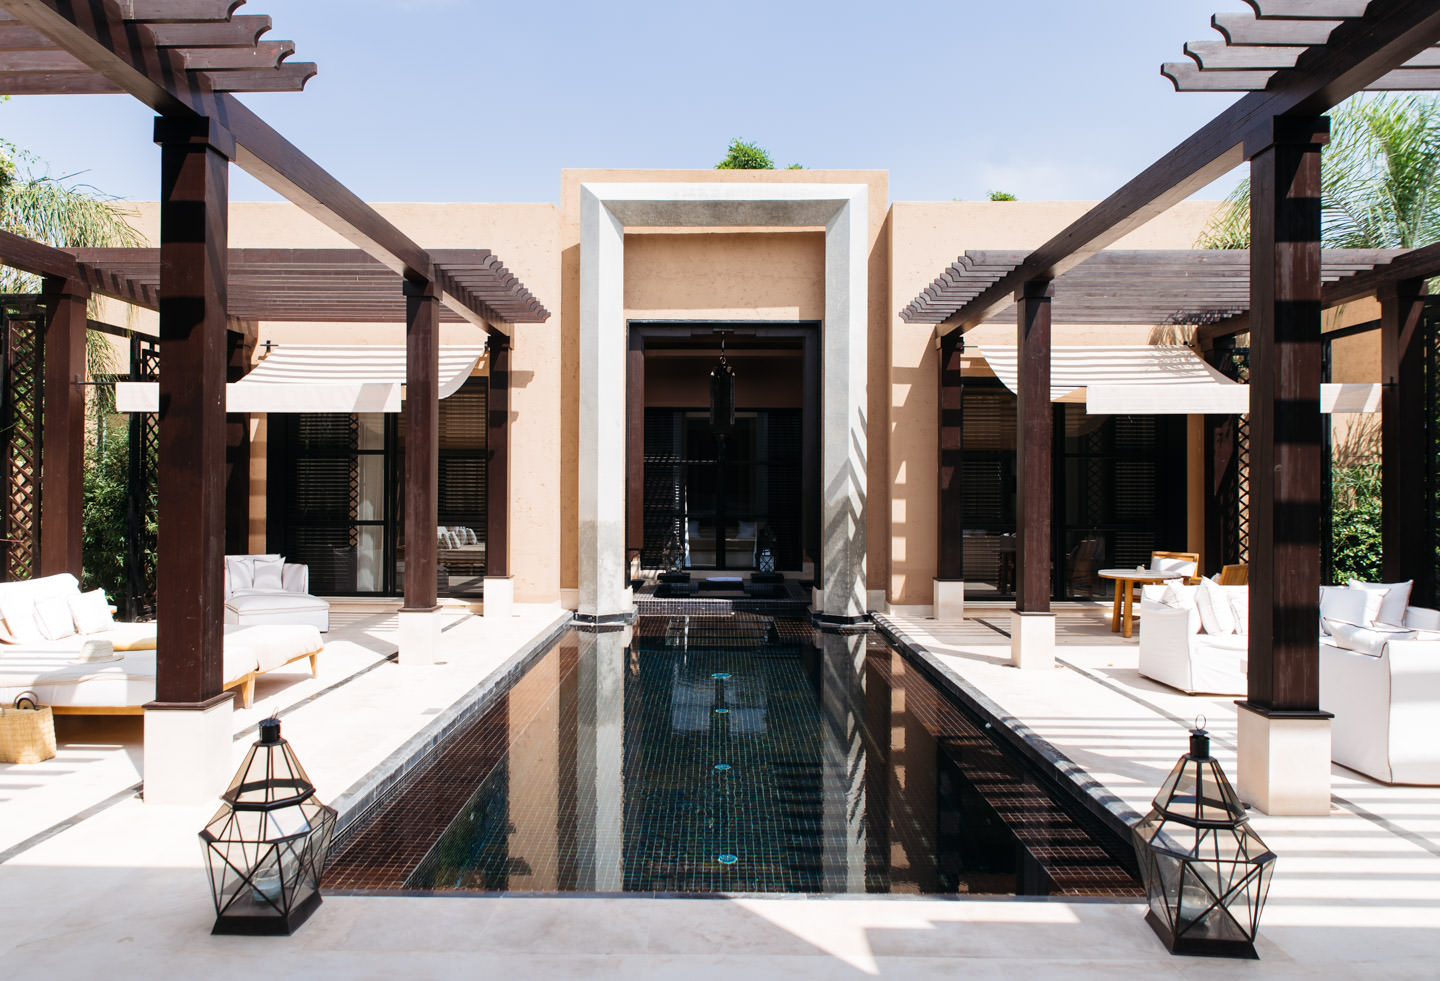 Blog-Mode-And-The-City-Lifestyle-Le-Madarin-Oriental-Marrakech-13